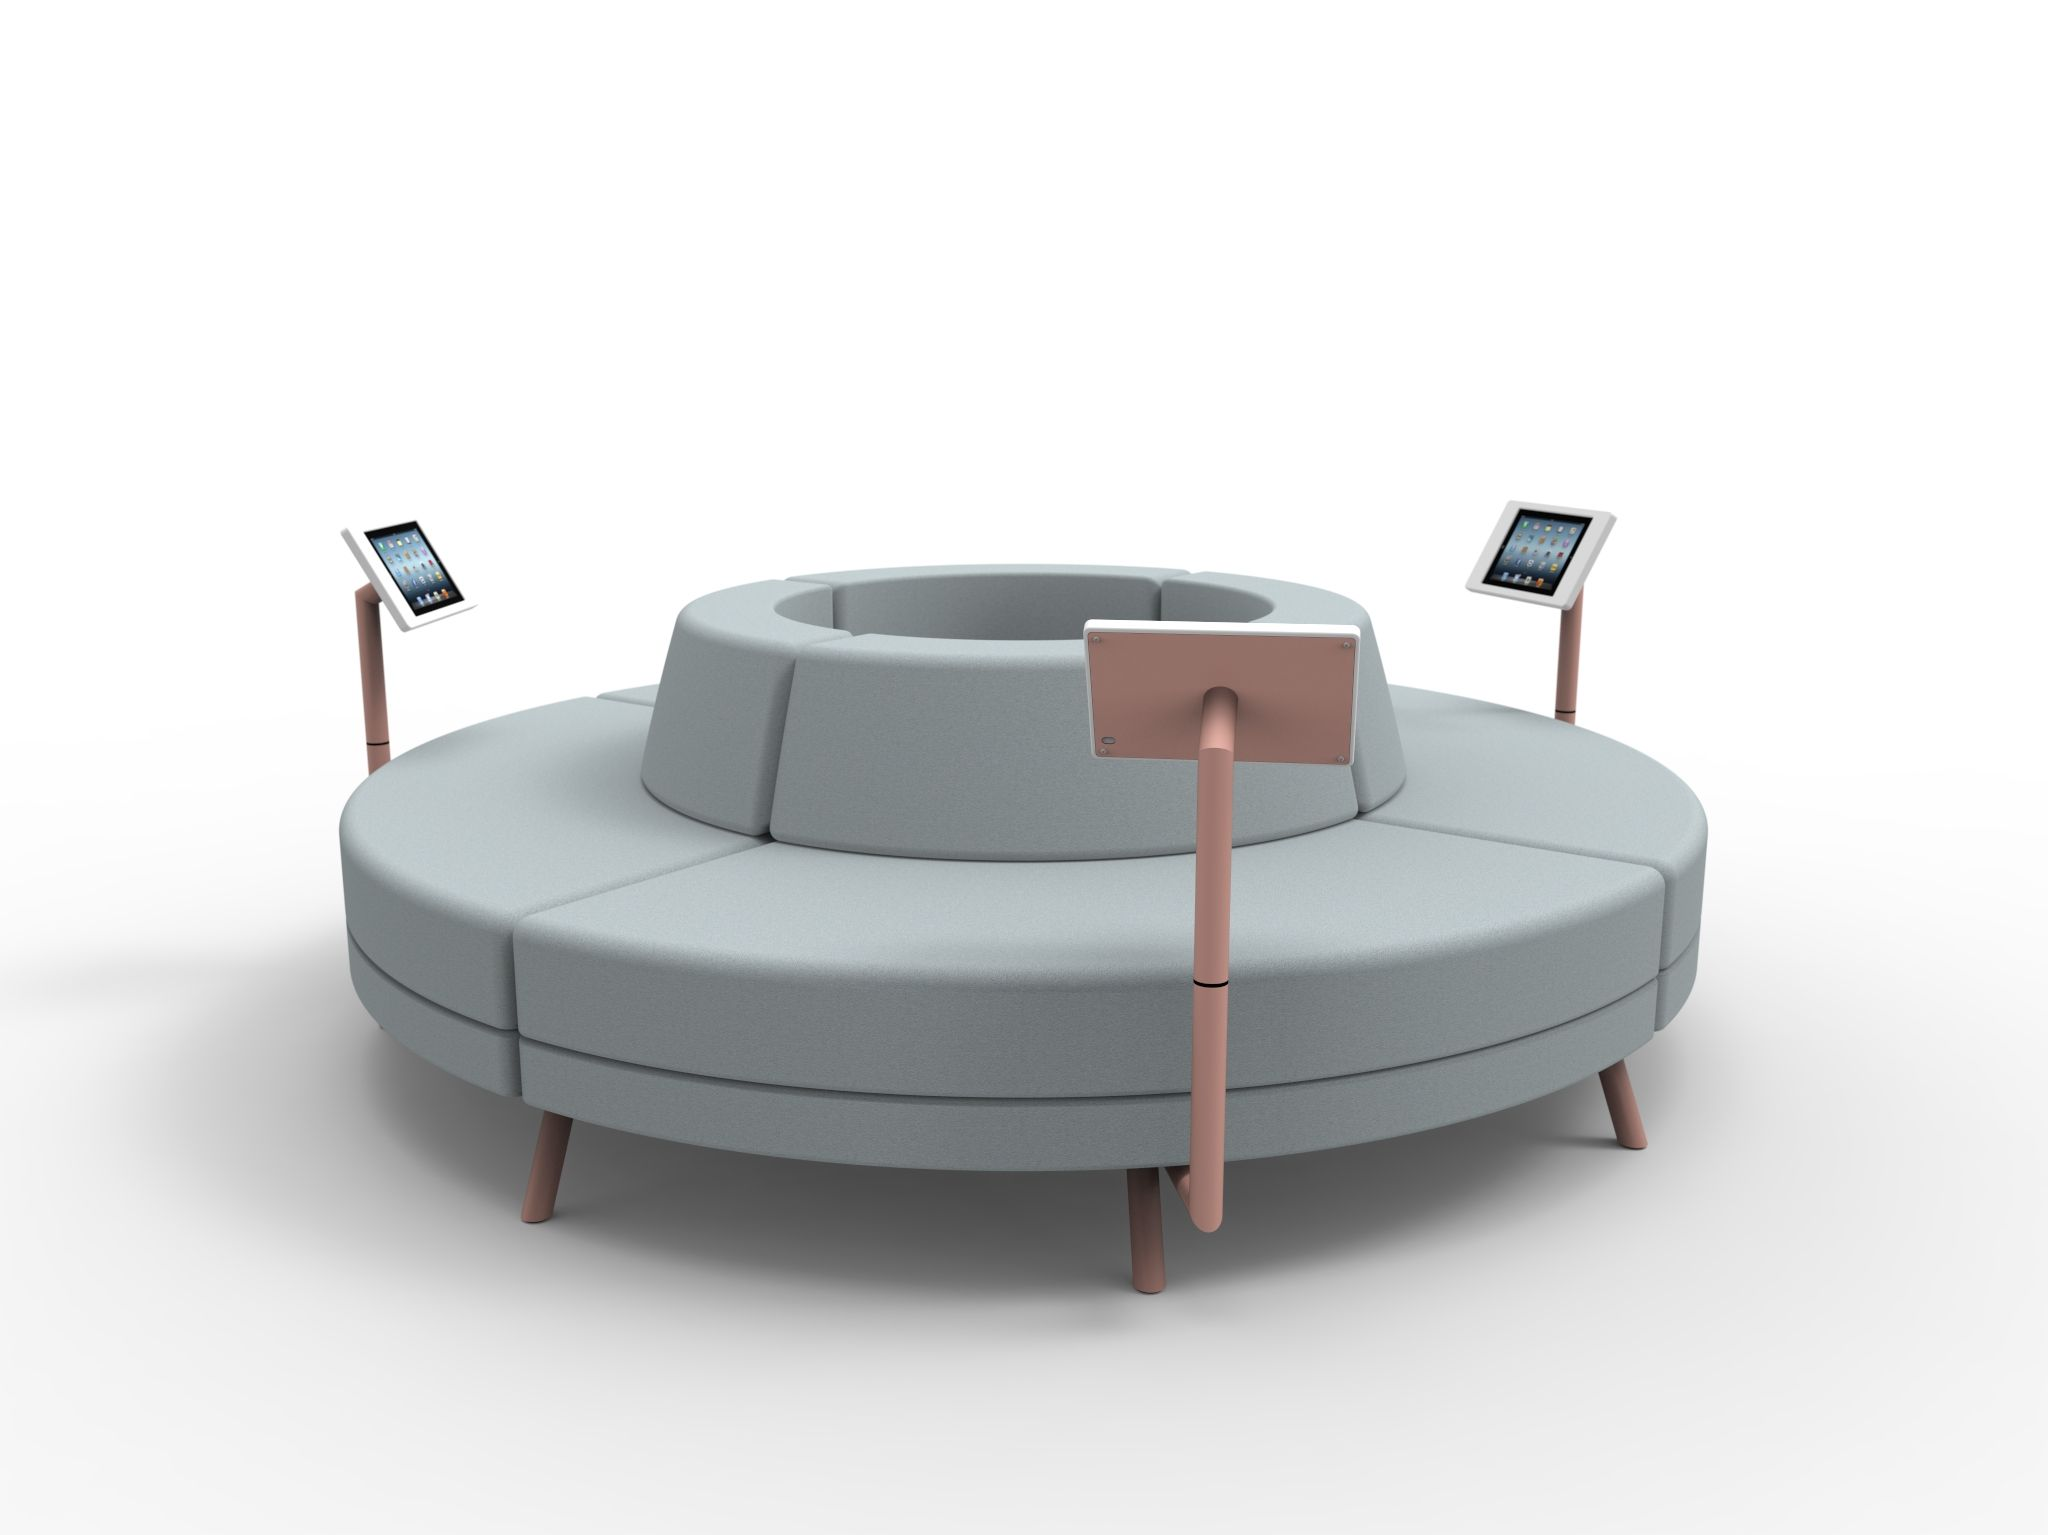 Rounded Sofa Bed Gallery Dandenong Round Couch 4 Ff Ande Pinterest